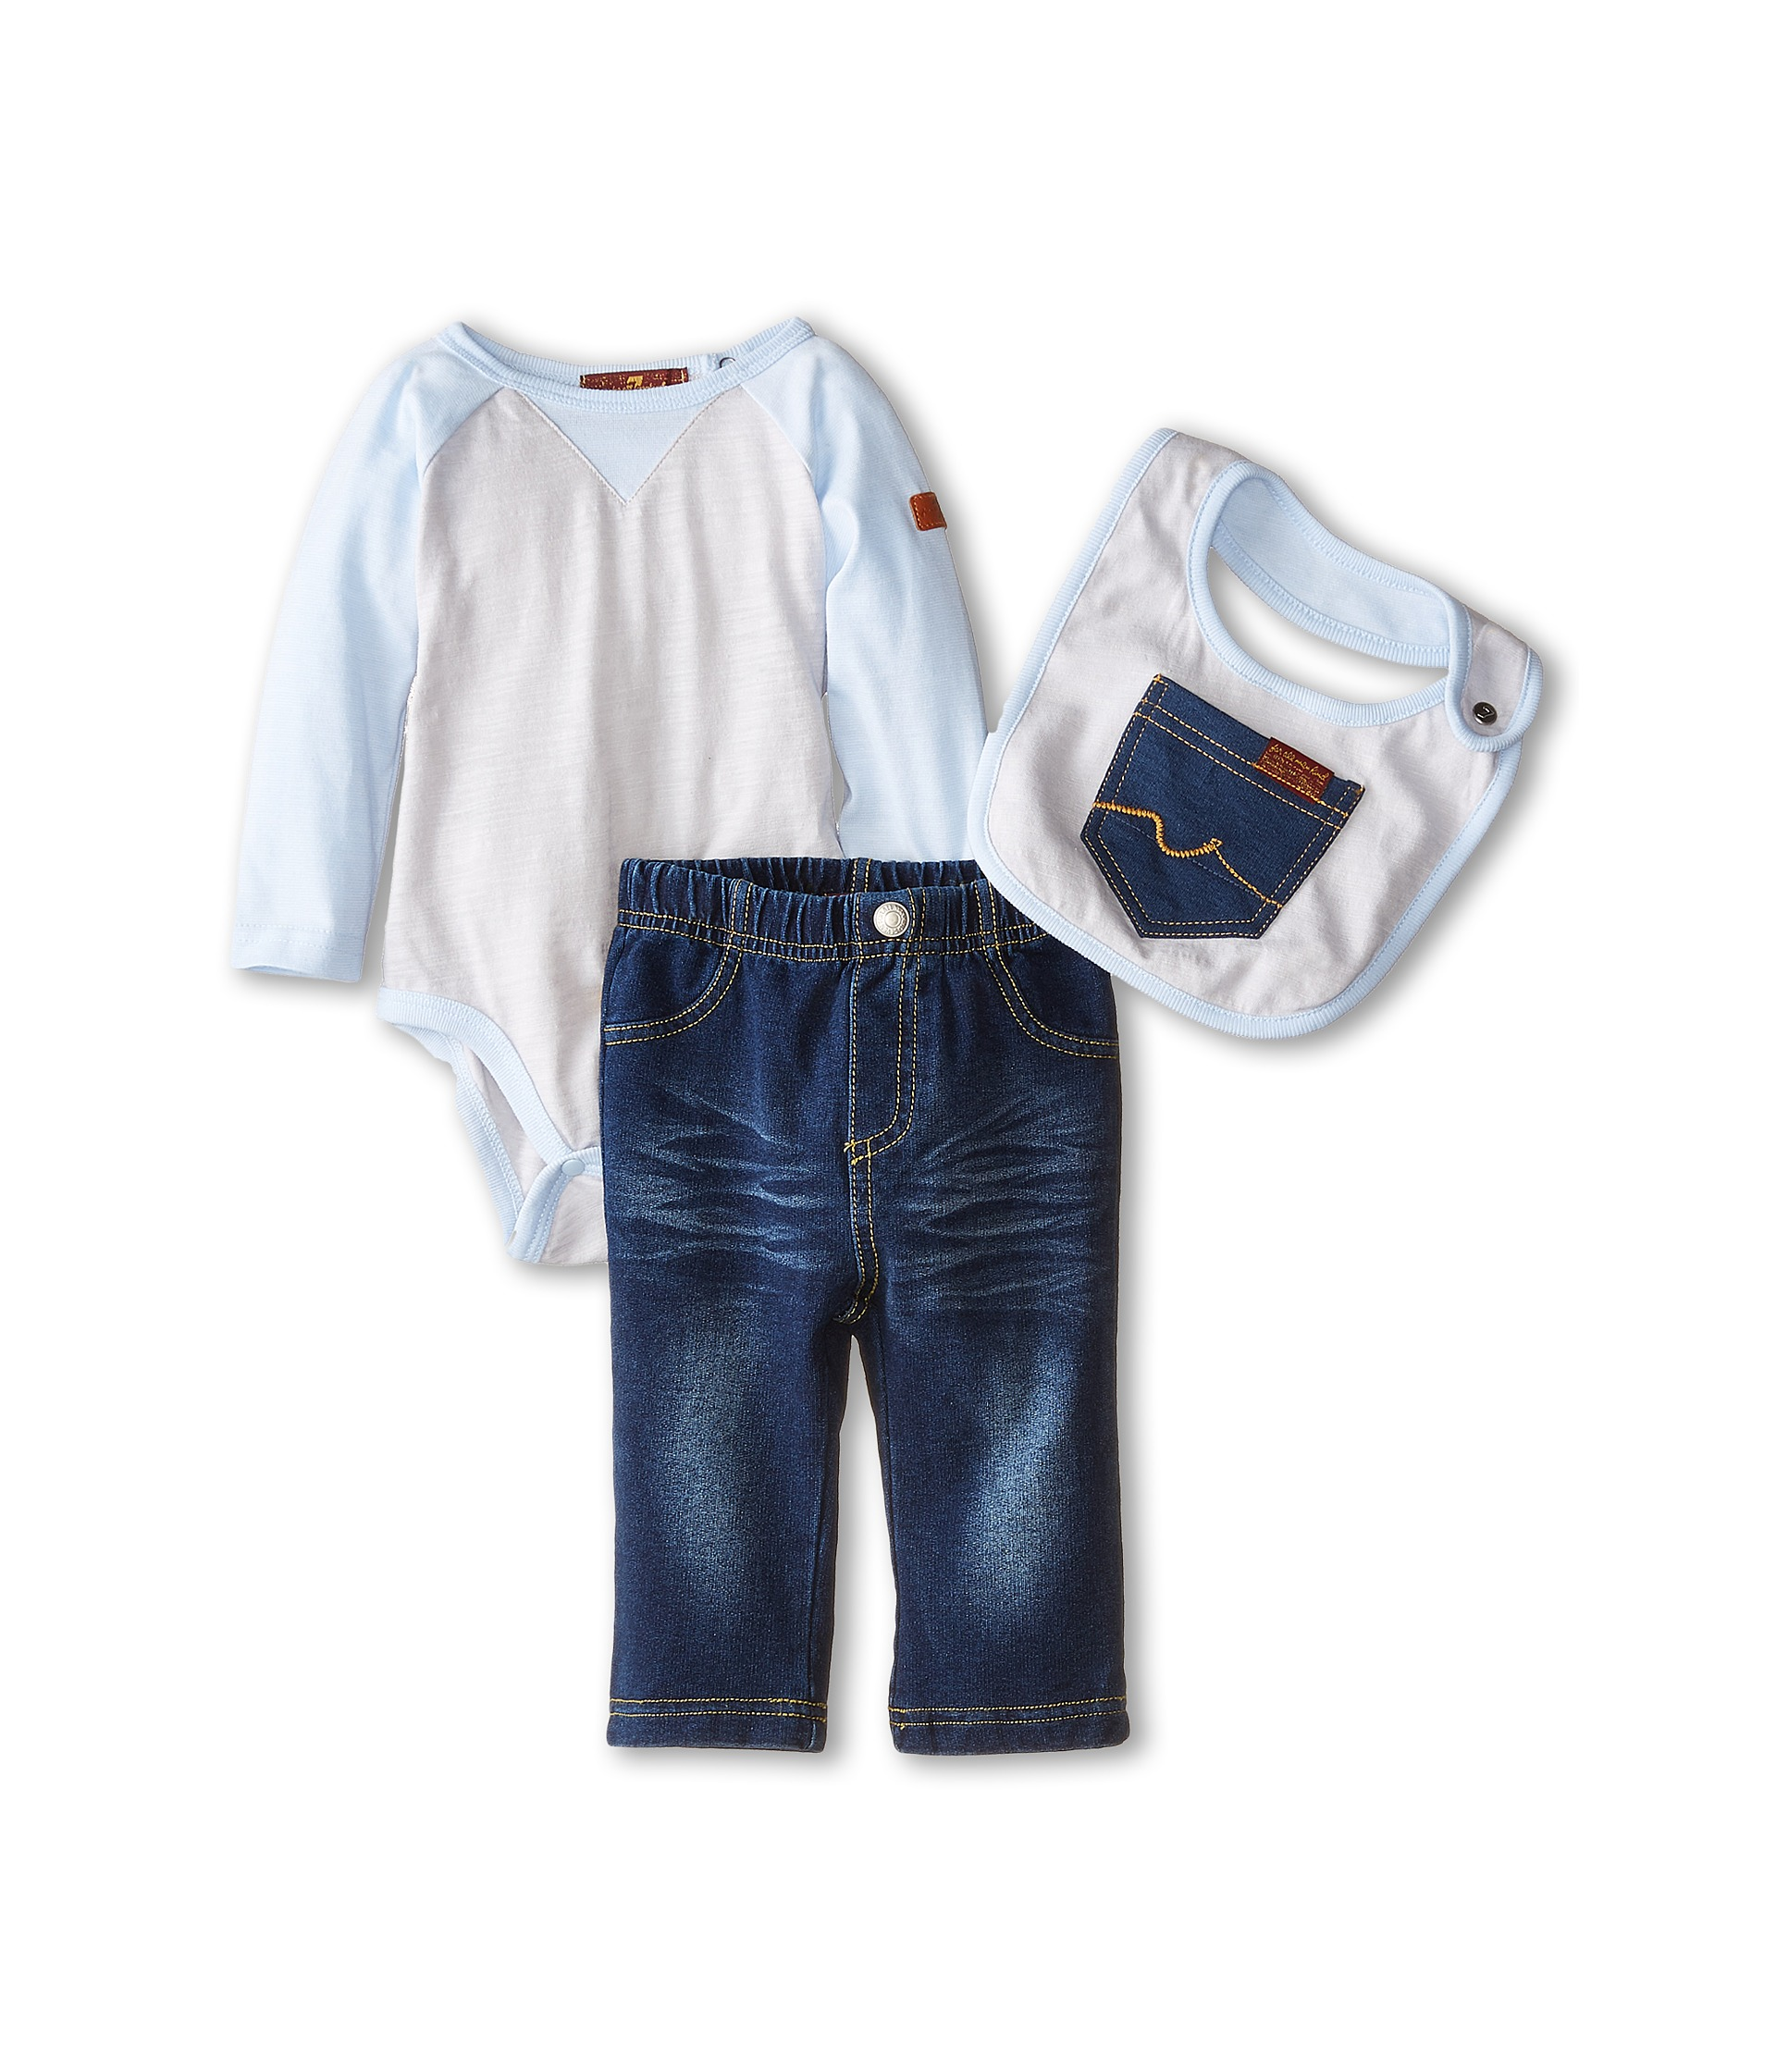 Find great deals on eBay for 7 for all mankind baby. Shop with confidence.